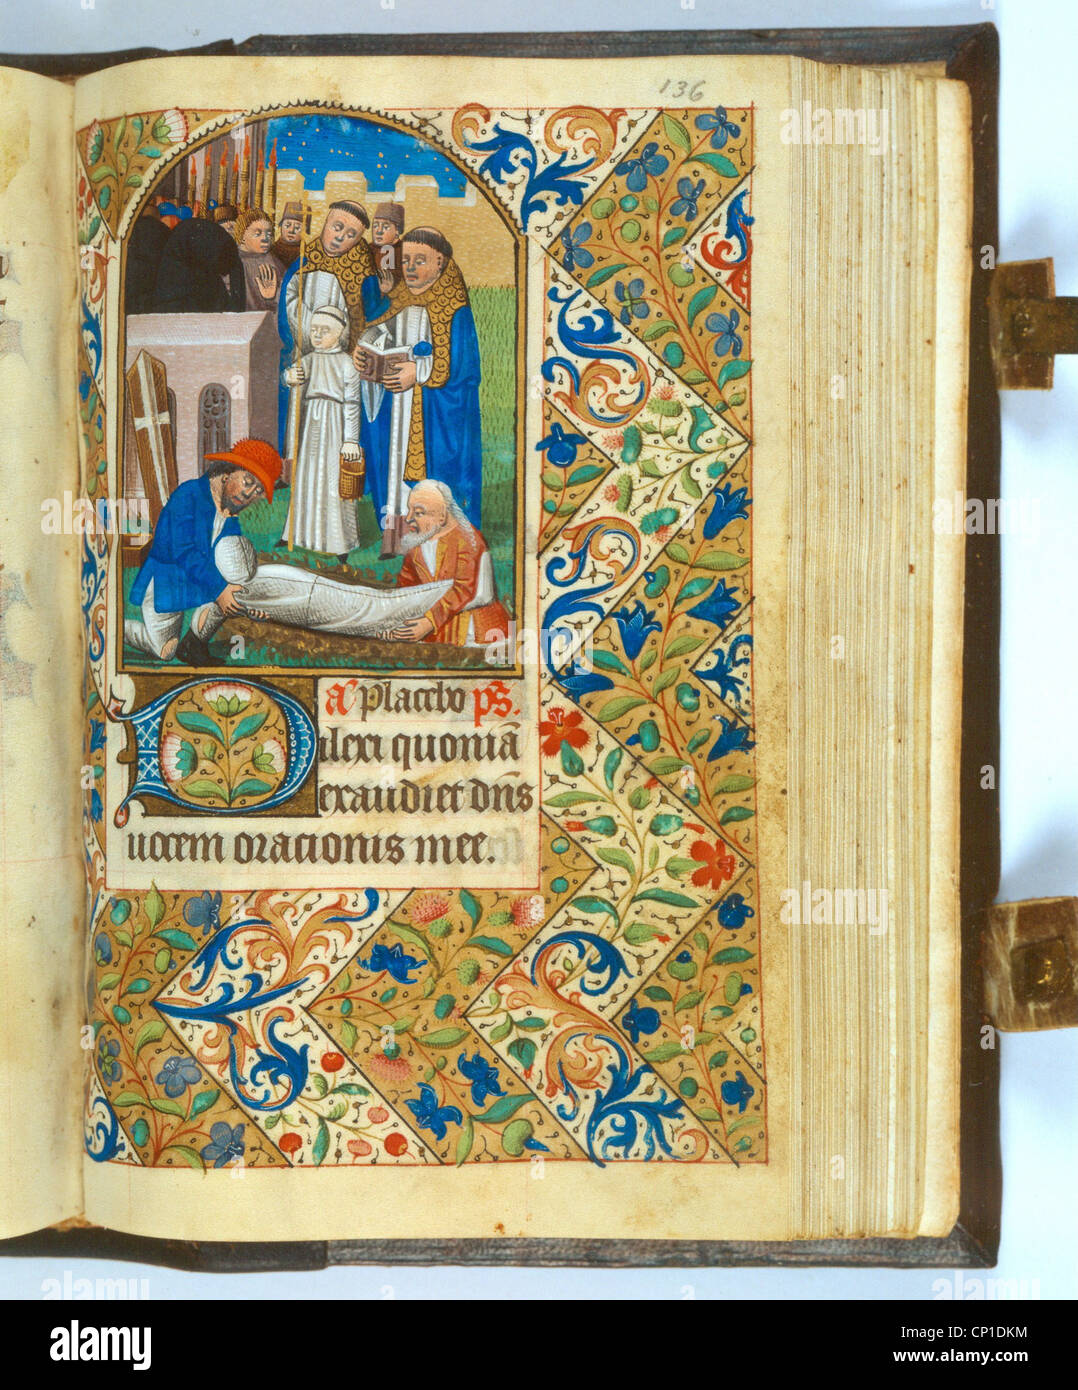 fine arts, Middle Ages, entombment, book of hours, Northeast France, 1430 - 1440, Badische Landesbibliothek Karlsruhe, - Stock Image